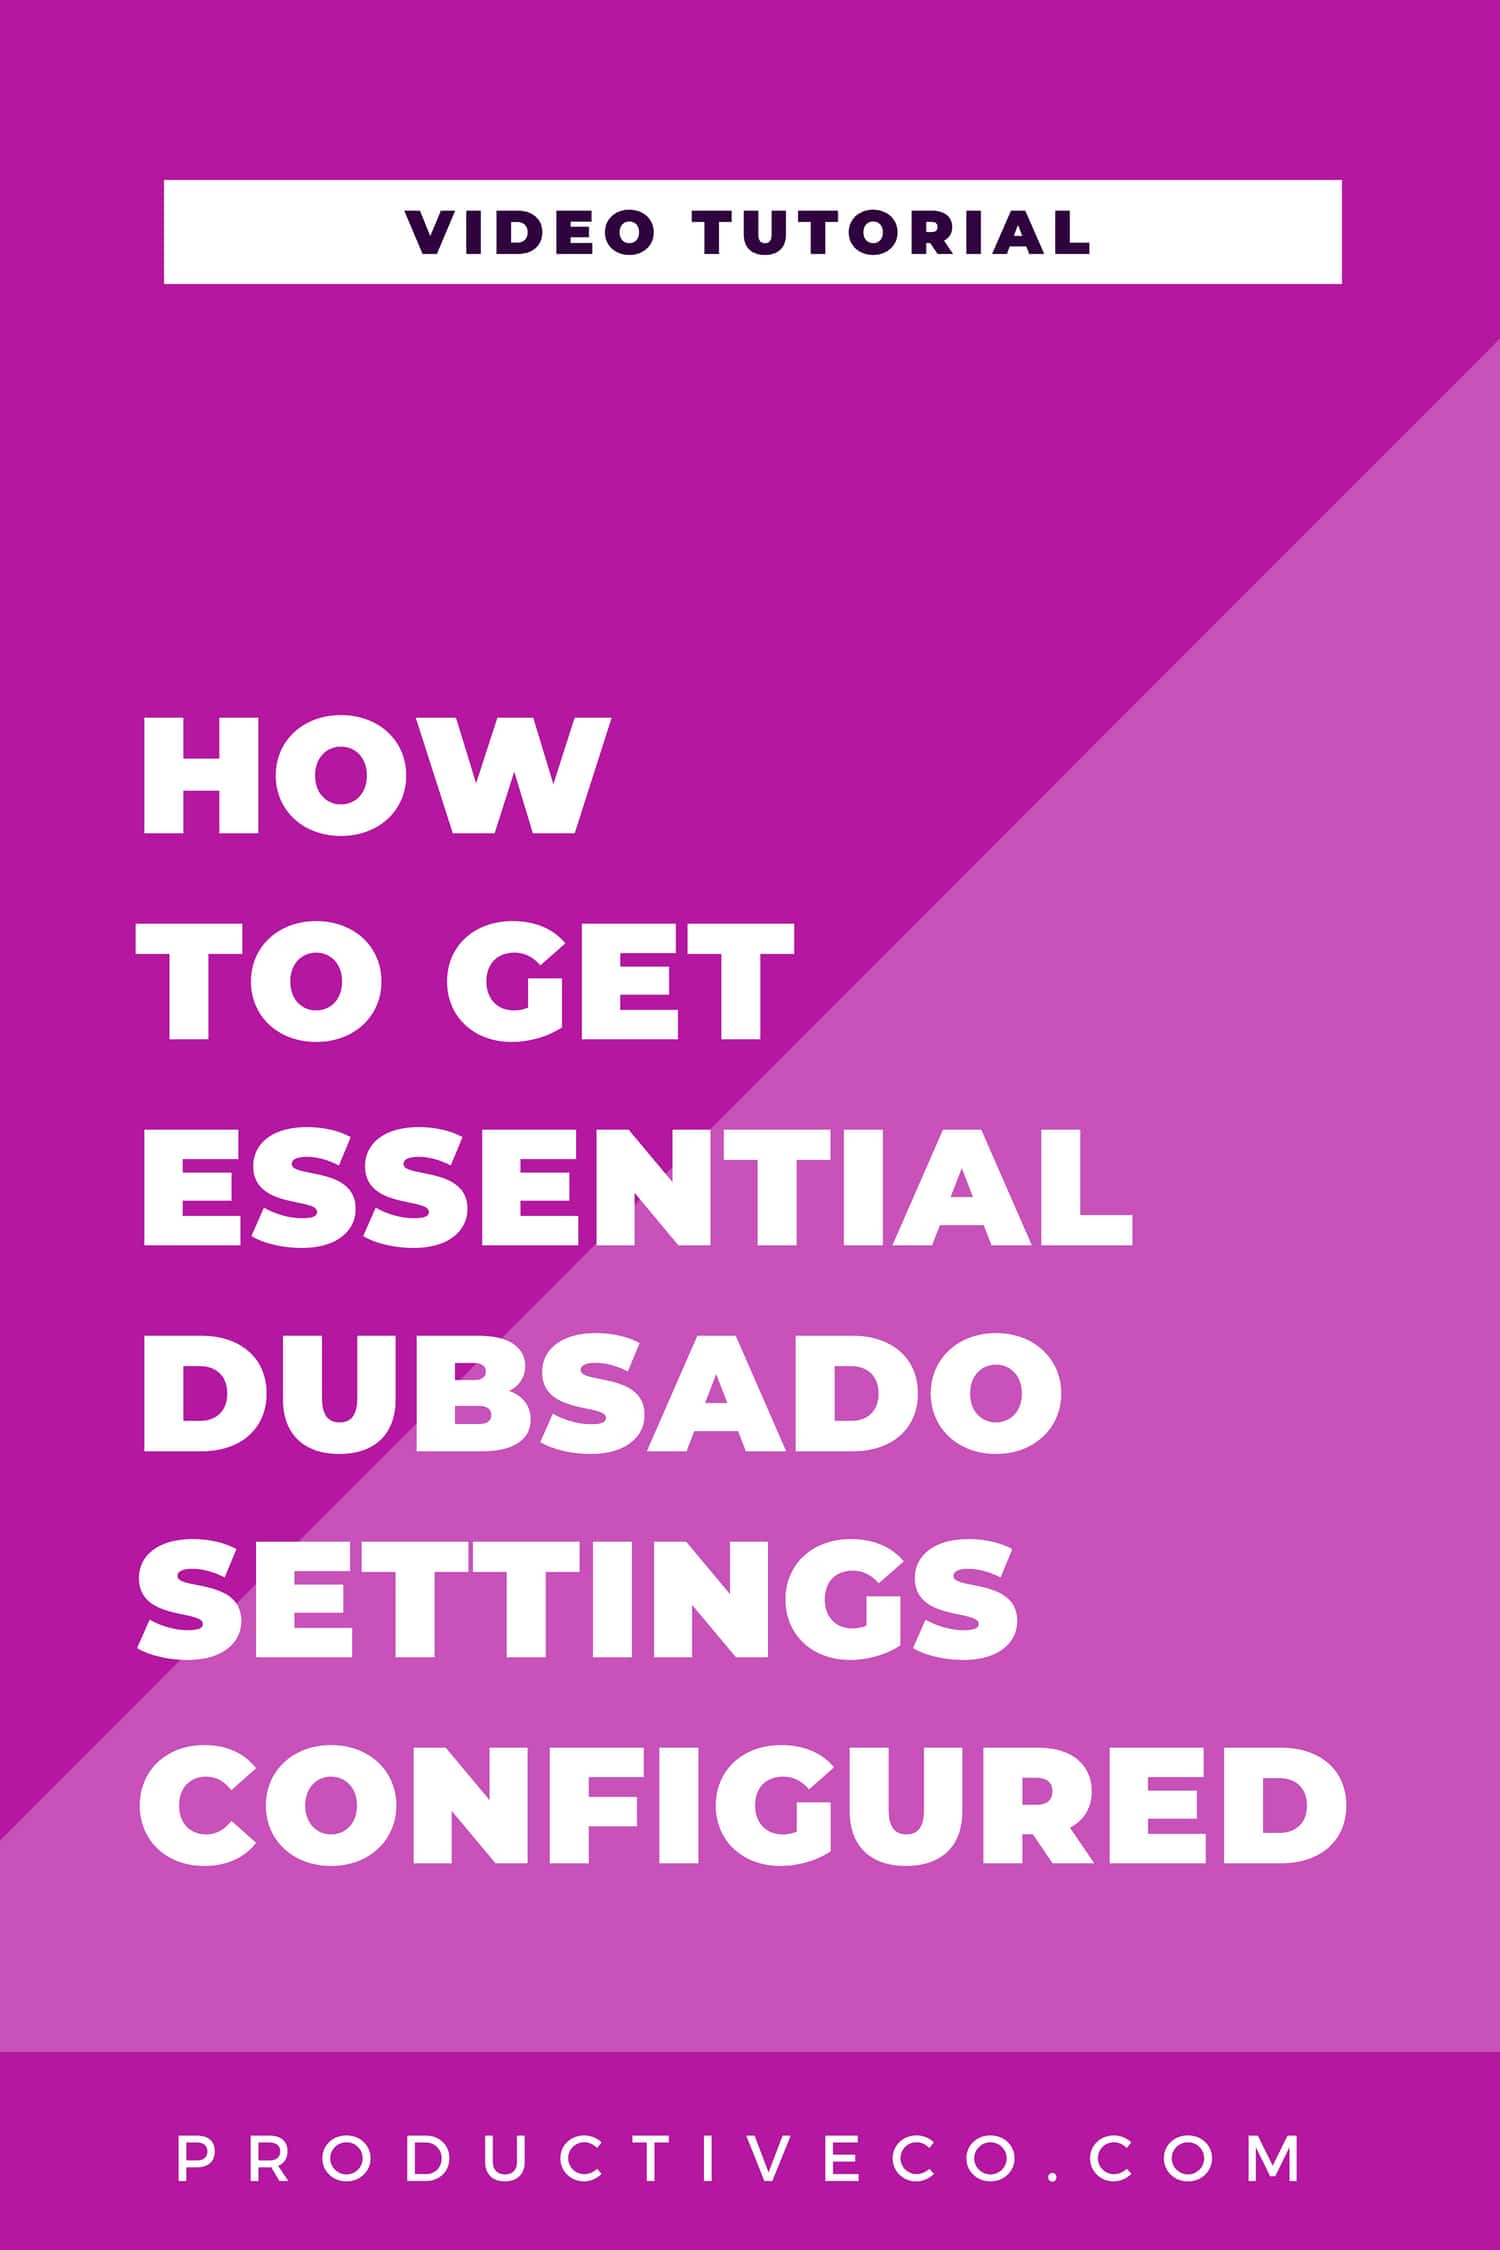 How to Set Up Your Brand Settings Tab in Dubsado Video. This is for basic account setup with client portal colors, payment gateways, email and calendar hookups, etc.